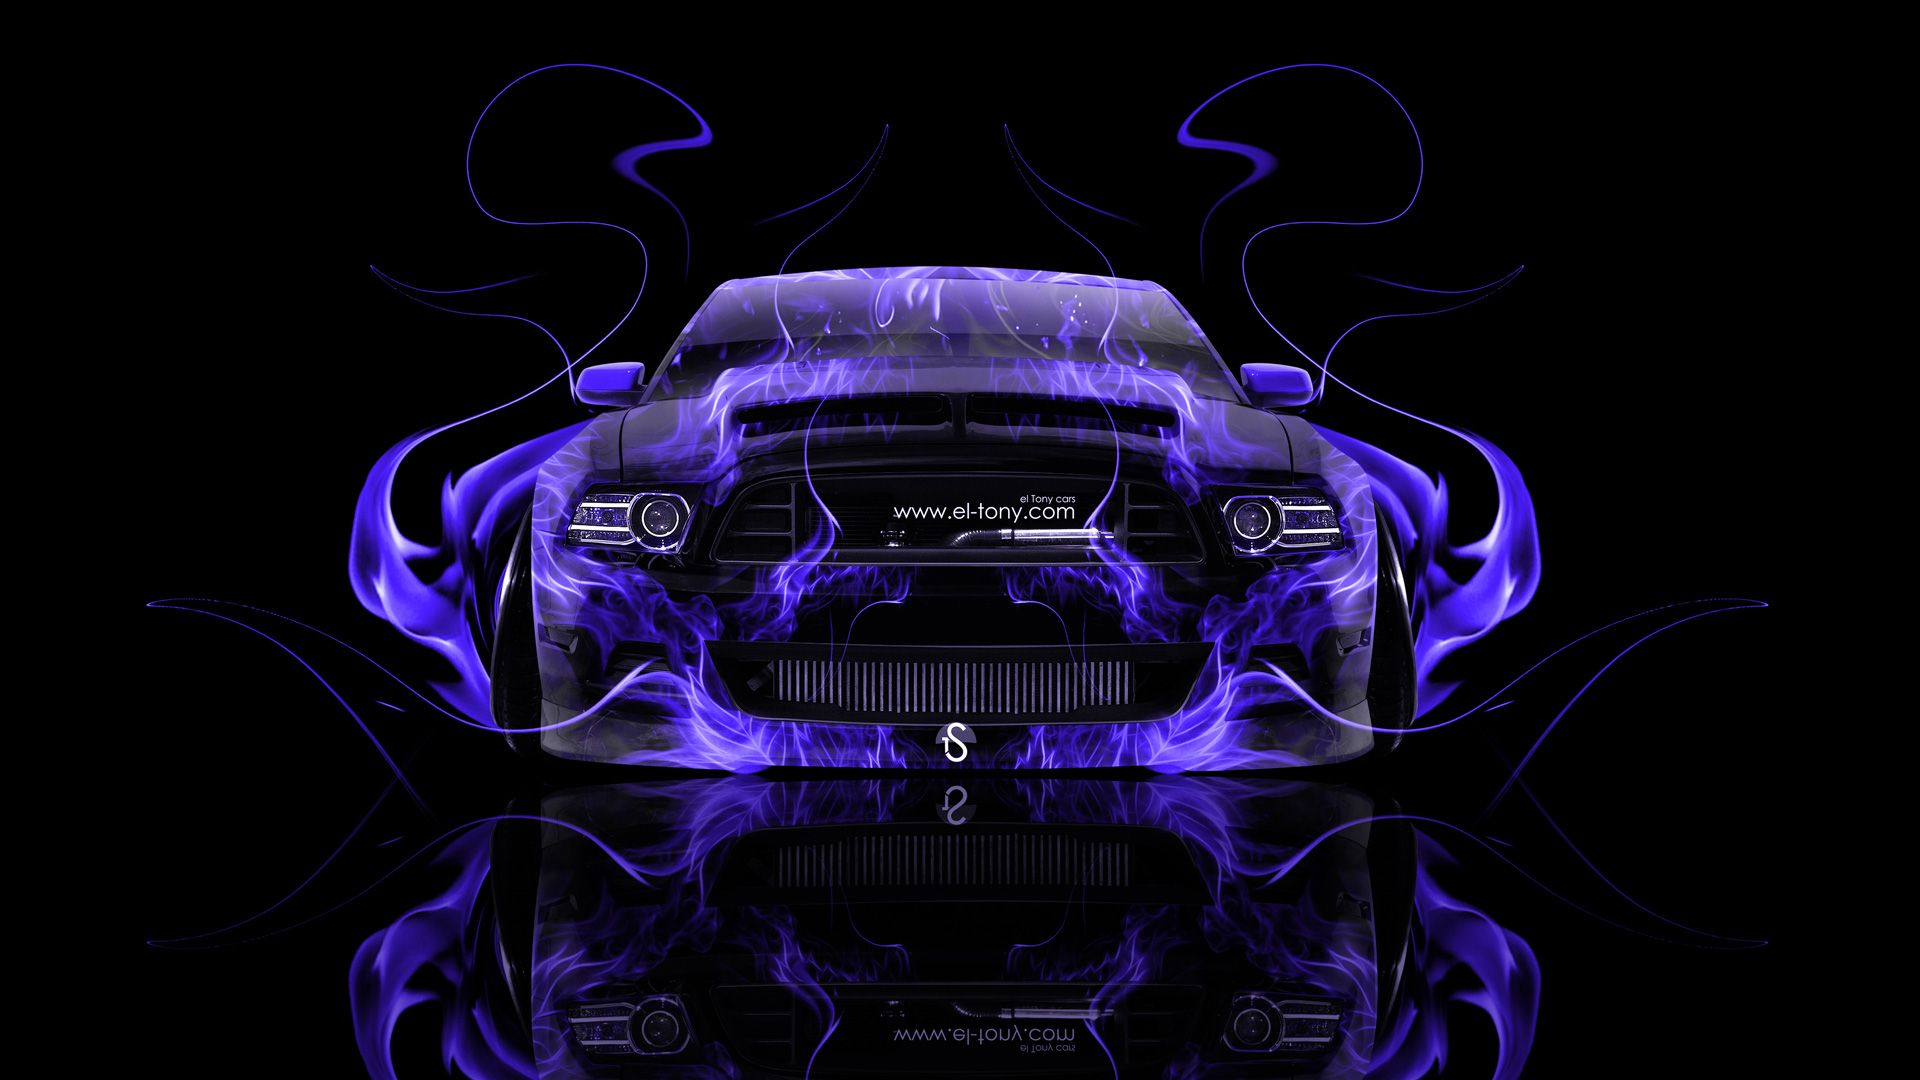 American Muscle Cars With Flames | Wallpaper Tony Kokhan, Ford, Mustang,  Gt, Front, Fire, Car, Tuning ... | DAP Of Just FLAMES (1) | Pinterest |  Ford ...